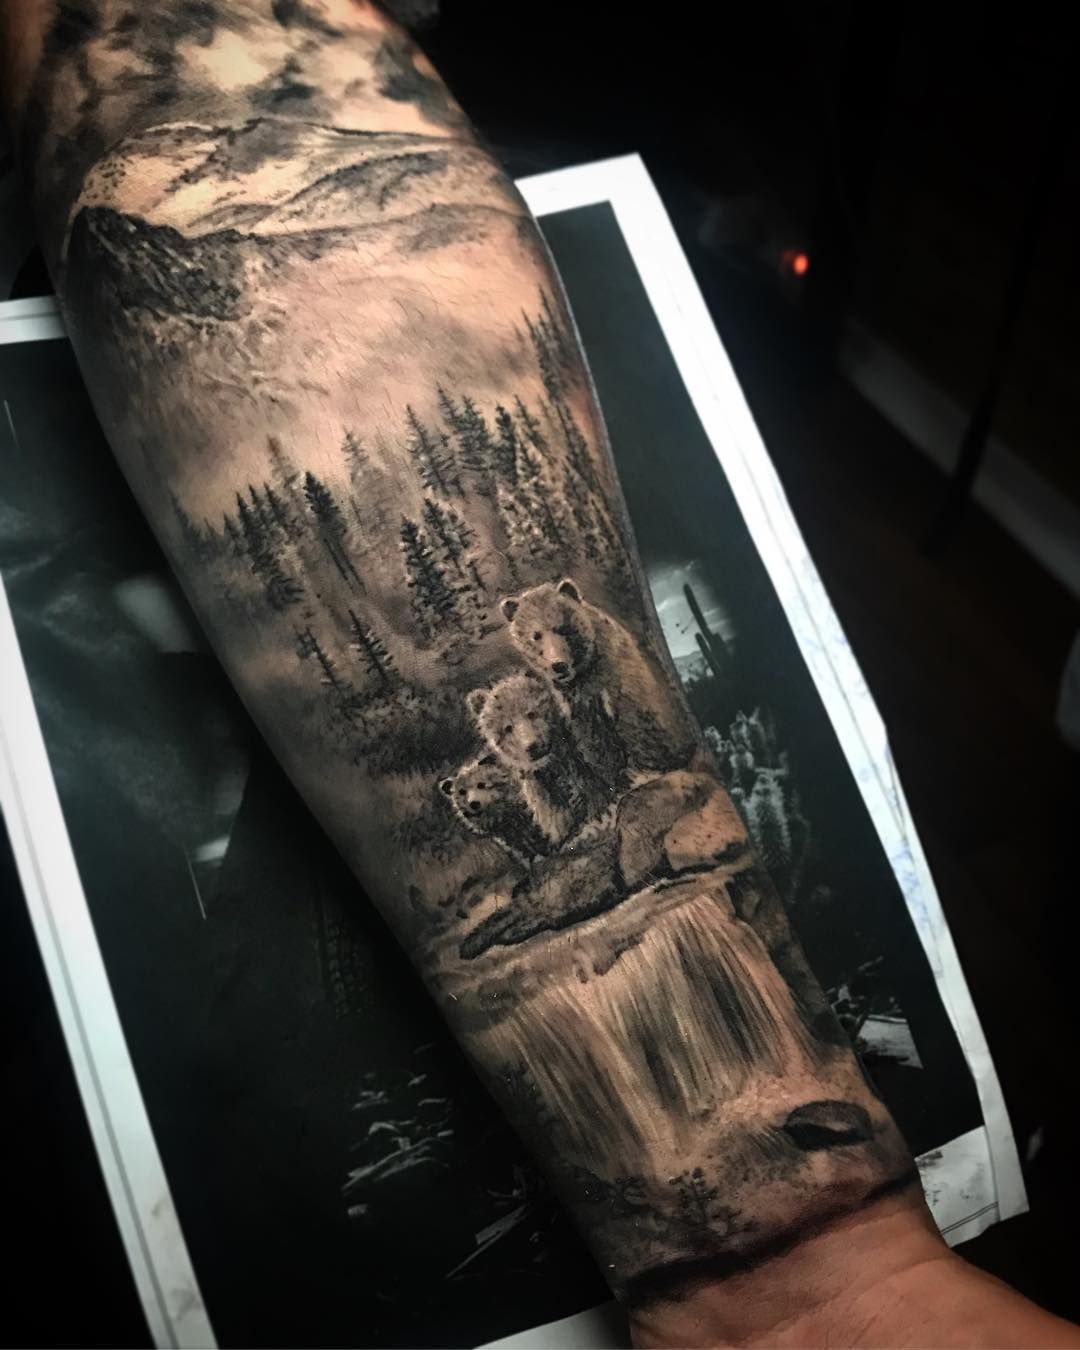 Cool Tattoo Ideas For Men And Women The Wild Tattoo Design Pictures 2019 Wolf Tattoo Sleeve Bear Tattoo Designs Nature Tattoo Sleeve